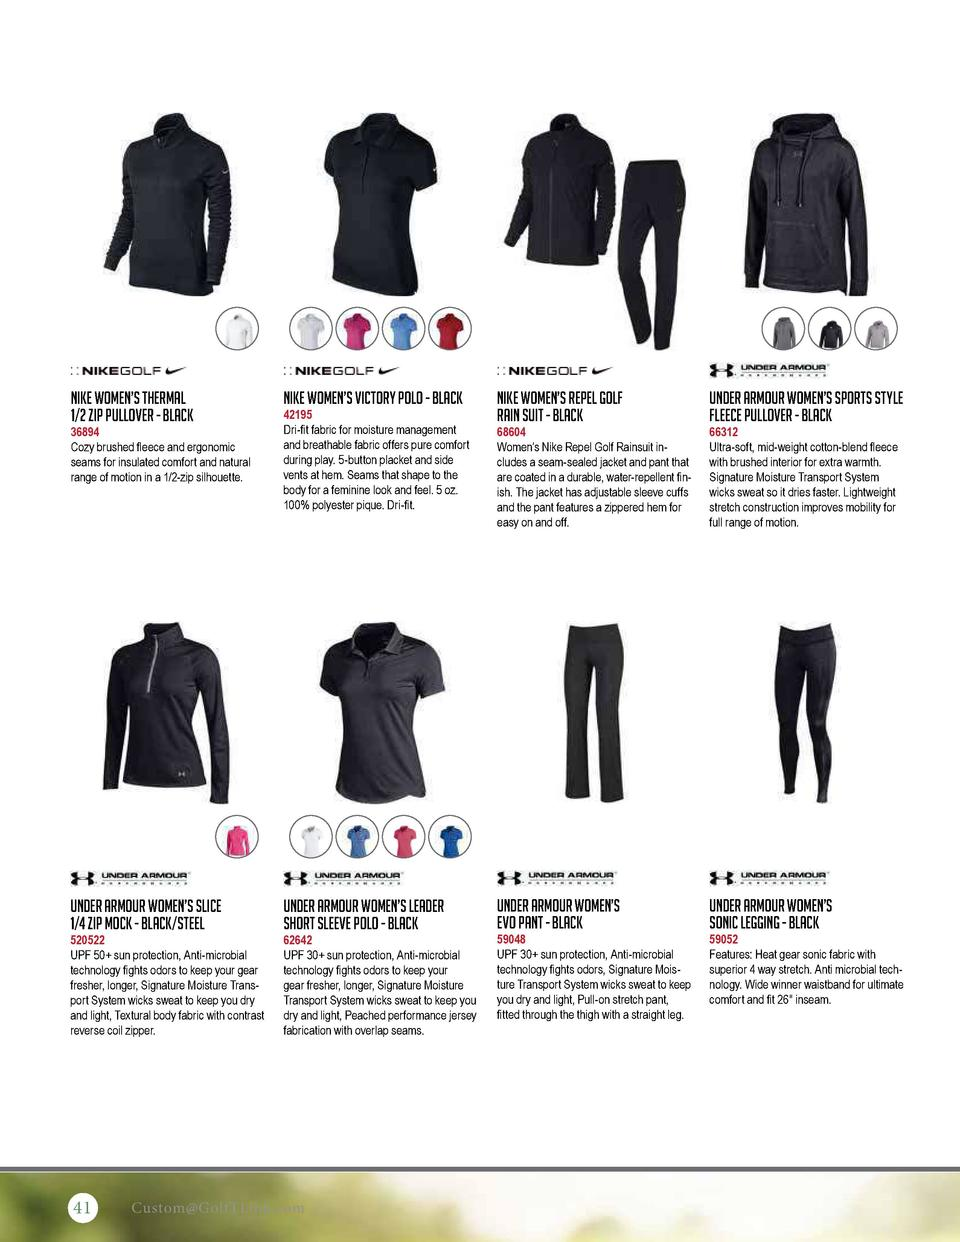 Nike Women   s Thermal 1 2 Zip Pullover - Black  Nike Women   s Victory Polo - Black  36894 Cozy brushed fleece and ergono...